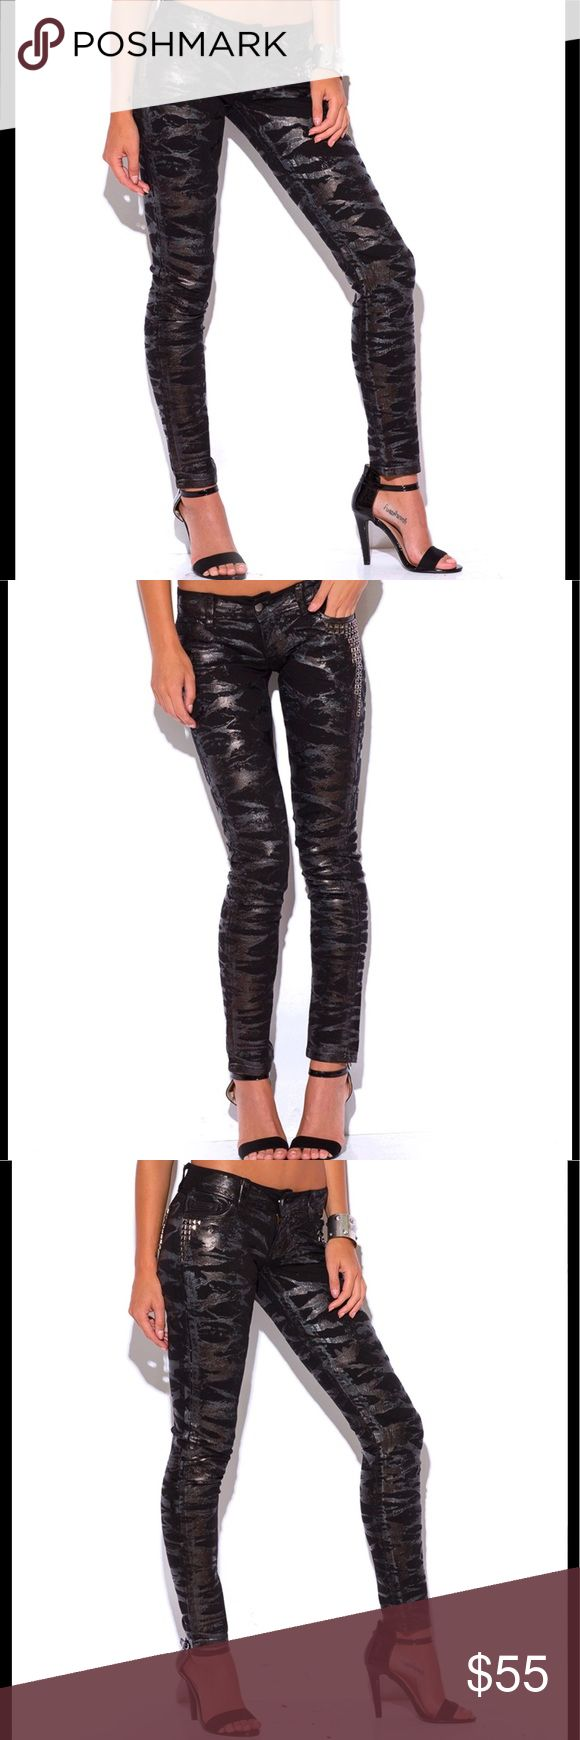 Metallic Jeans Unique Fashionable Denim These metallic jeans are not your average skinnies! These black skinny jeans feature metallic brushed in patterns and bejeweled in the perfect places😘 Go out dress up with a crop top or tuck in pair of booties and leather vest for fall. Great year around pair of jeans! Model is 5'9 made out of 98% Cotton, 2% Spandex. Made in the USA! 070420171475609 Jeans Skinny